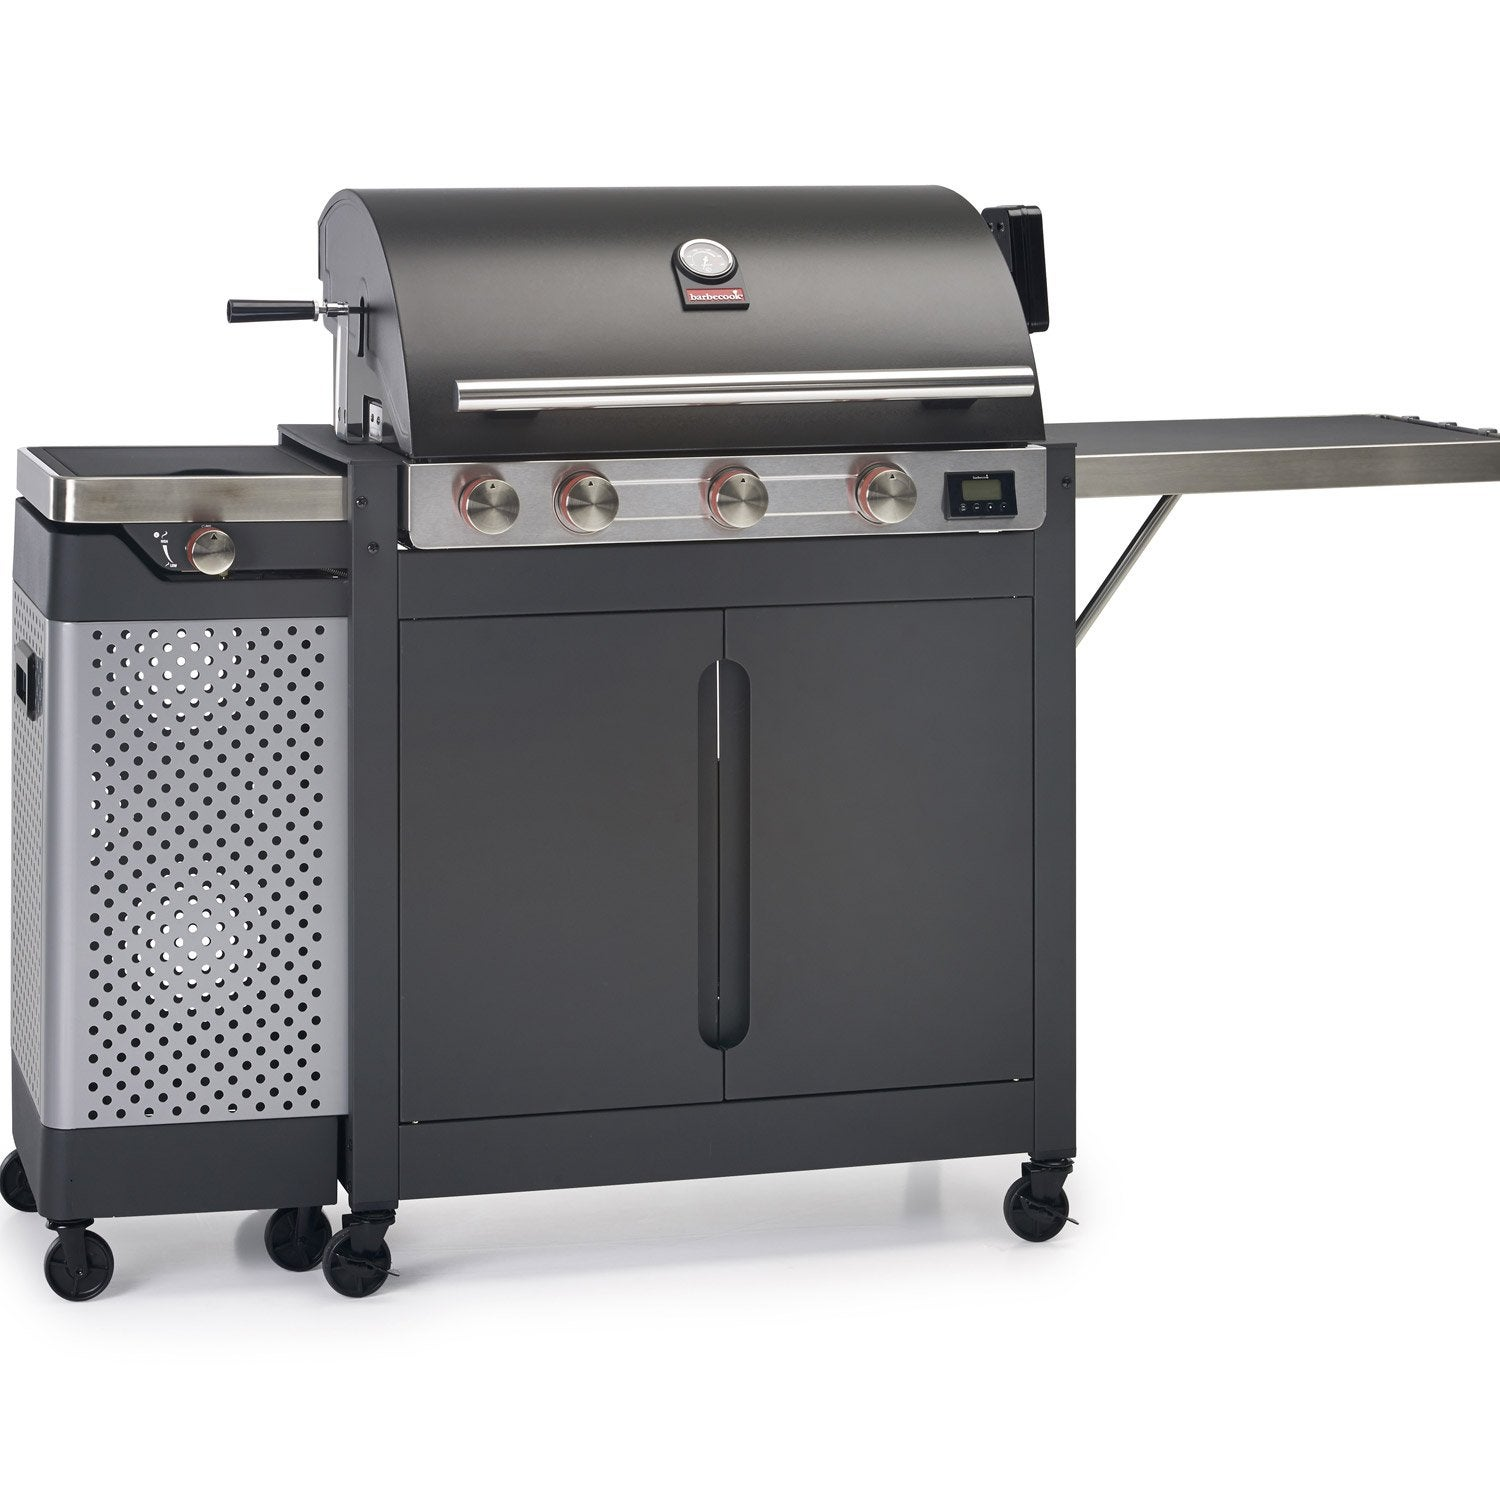 Barbecue nok 4 bruleurs leroy merlin for Barbecue a gaz leroy merlin